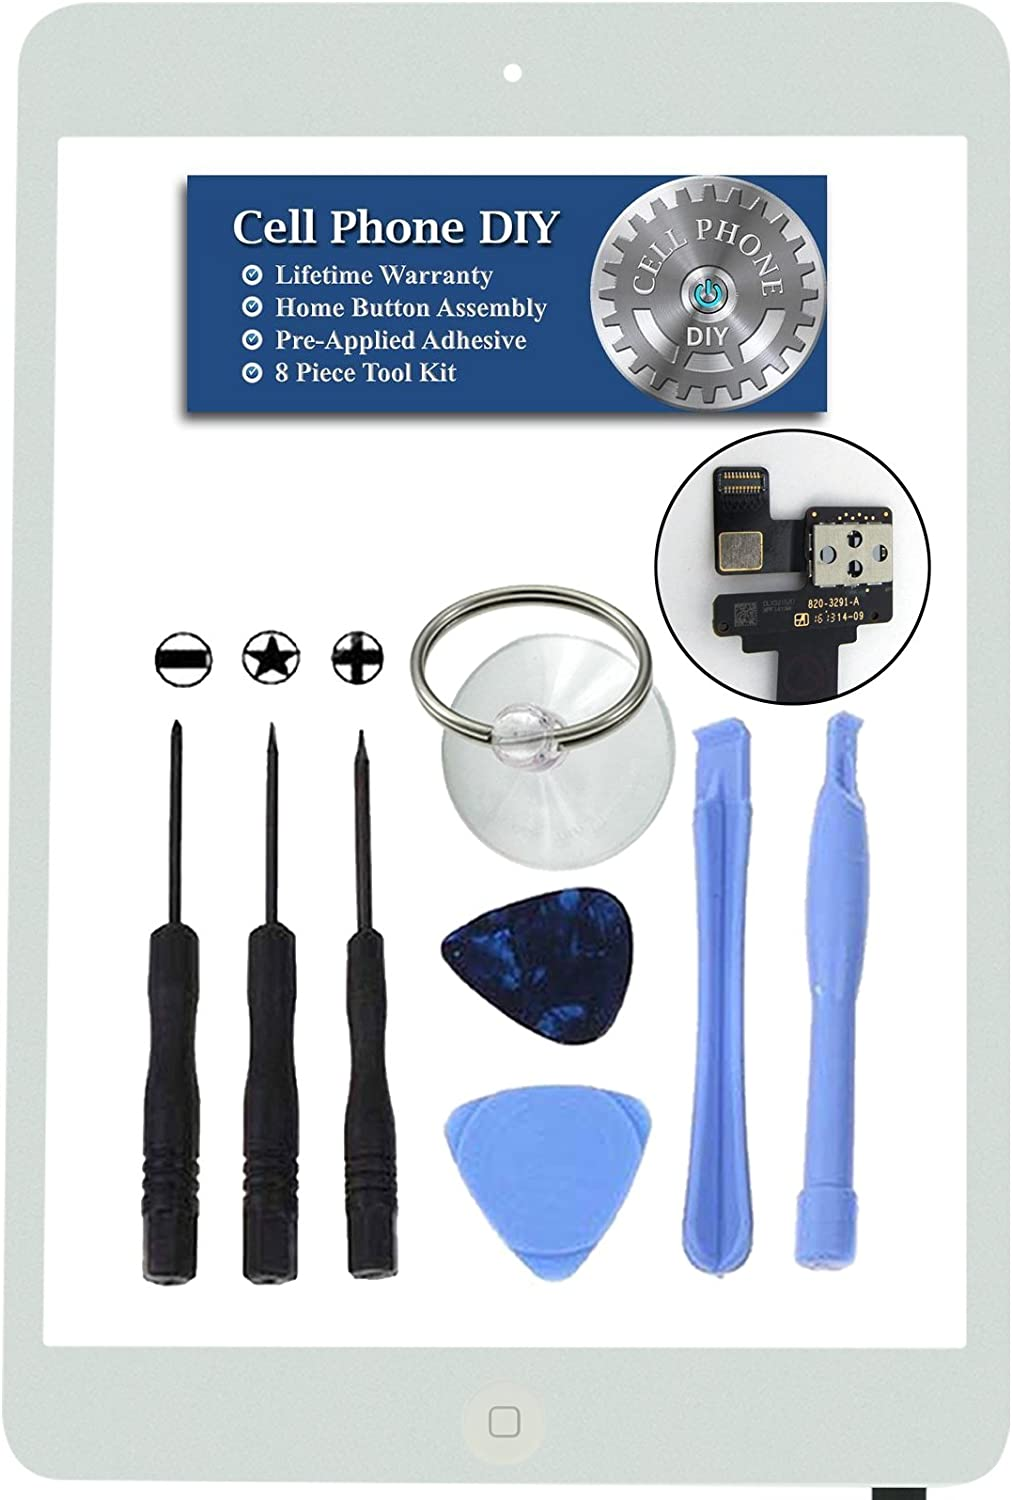 Pre-Installed Adhesive with Tools Includes Home Button Camera Holder Repair Kit by Cell Phone DIY White iPad 3 Digitizer Replacement Screen Front Touch Glass Assembly Replacement